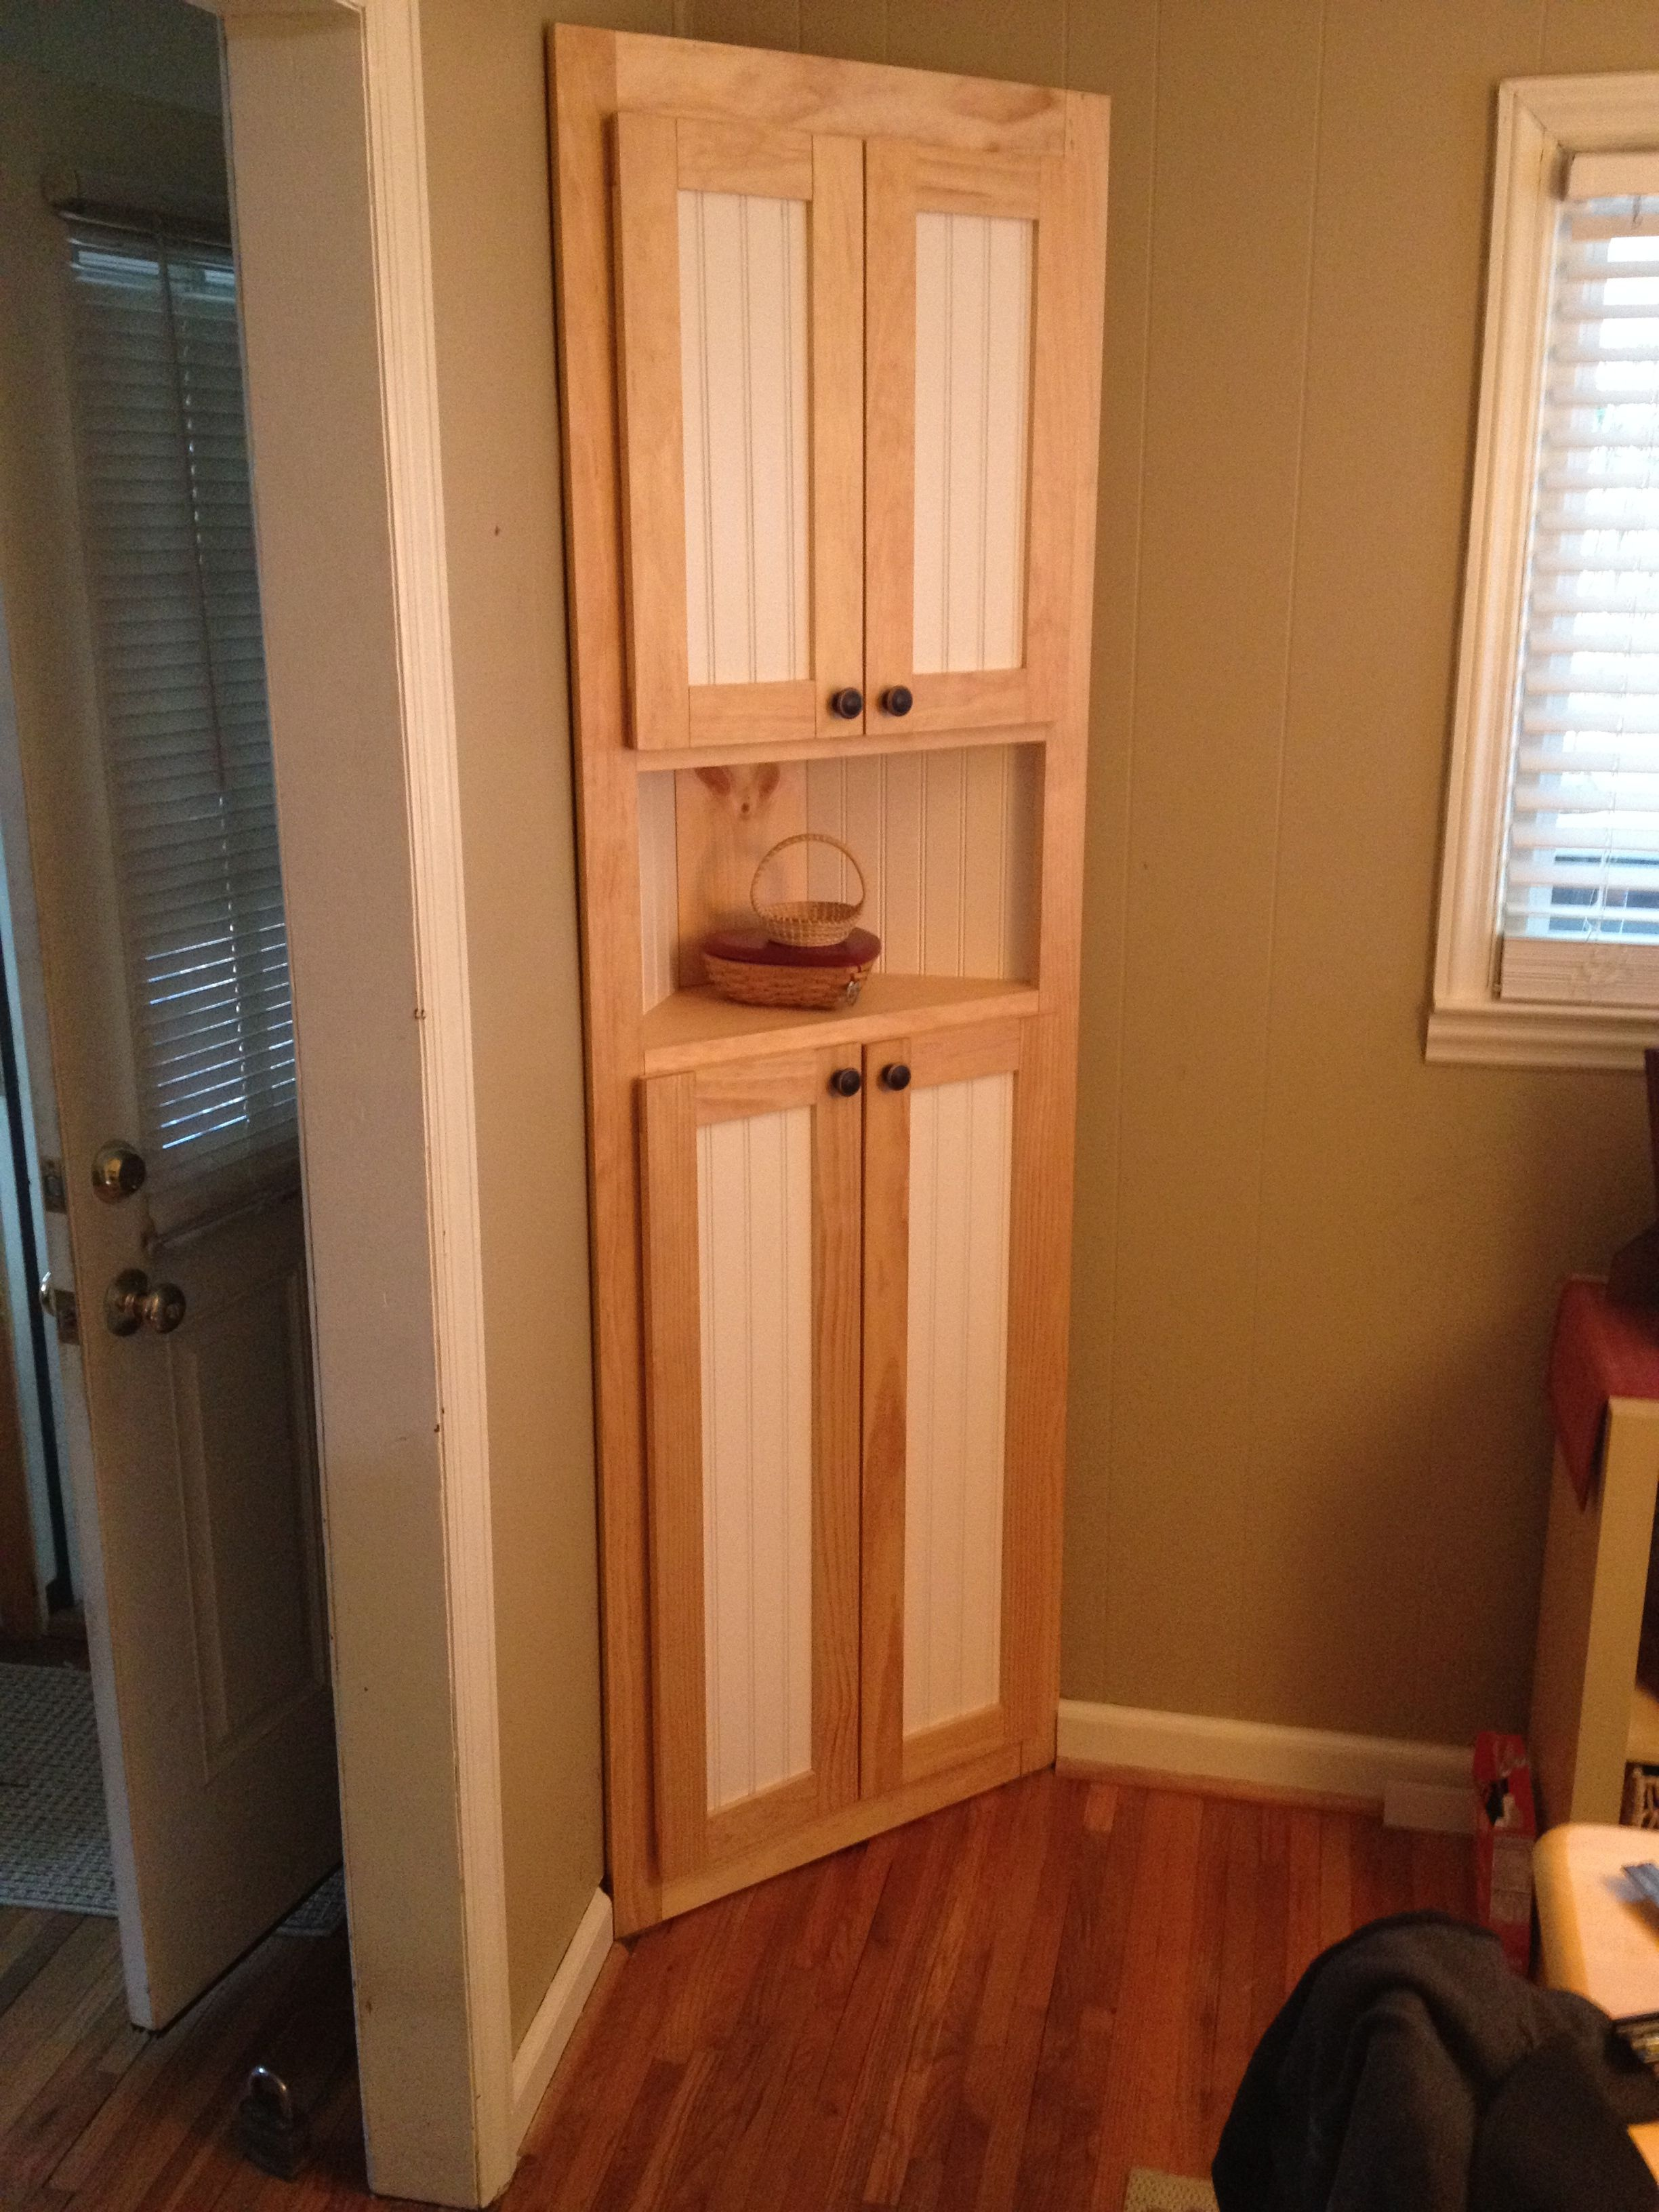 Best Corner Cabinet Do It Yourself Home Projects From Ana 640 x 480